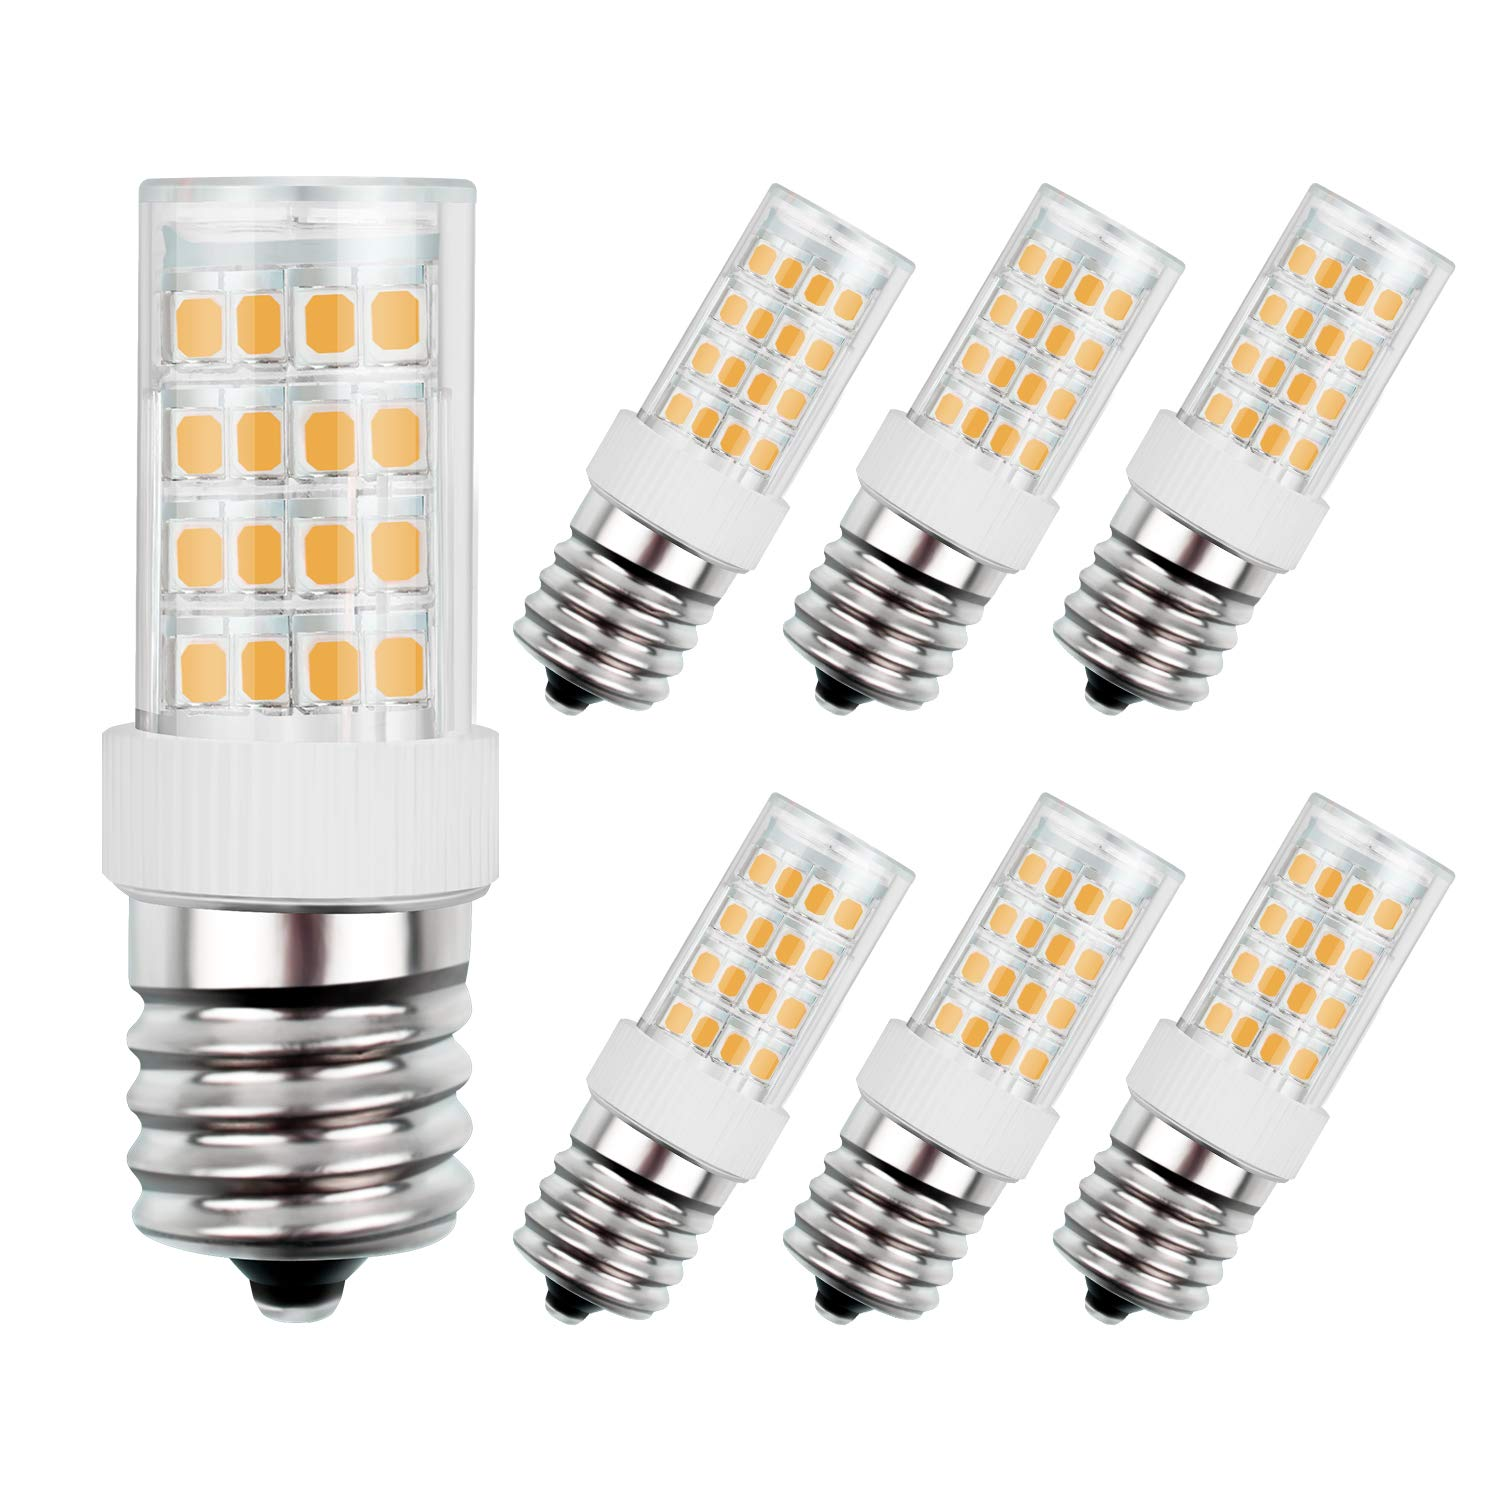 DiCUNO E17 LED Bulb,Appliance Bulbs, Microwave Oven, Stovetop Light, 4W 400lm, Warm White 3000k, 40w Equivalent Replacement Incandescent Bulb, 6-Pack.